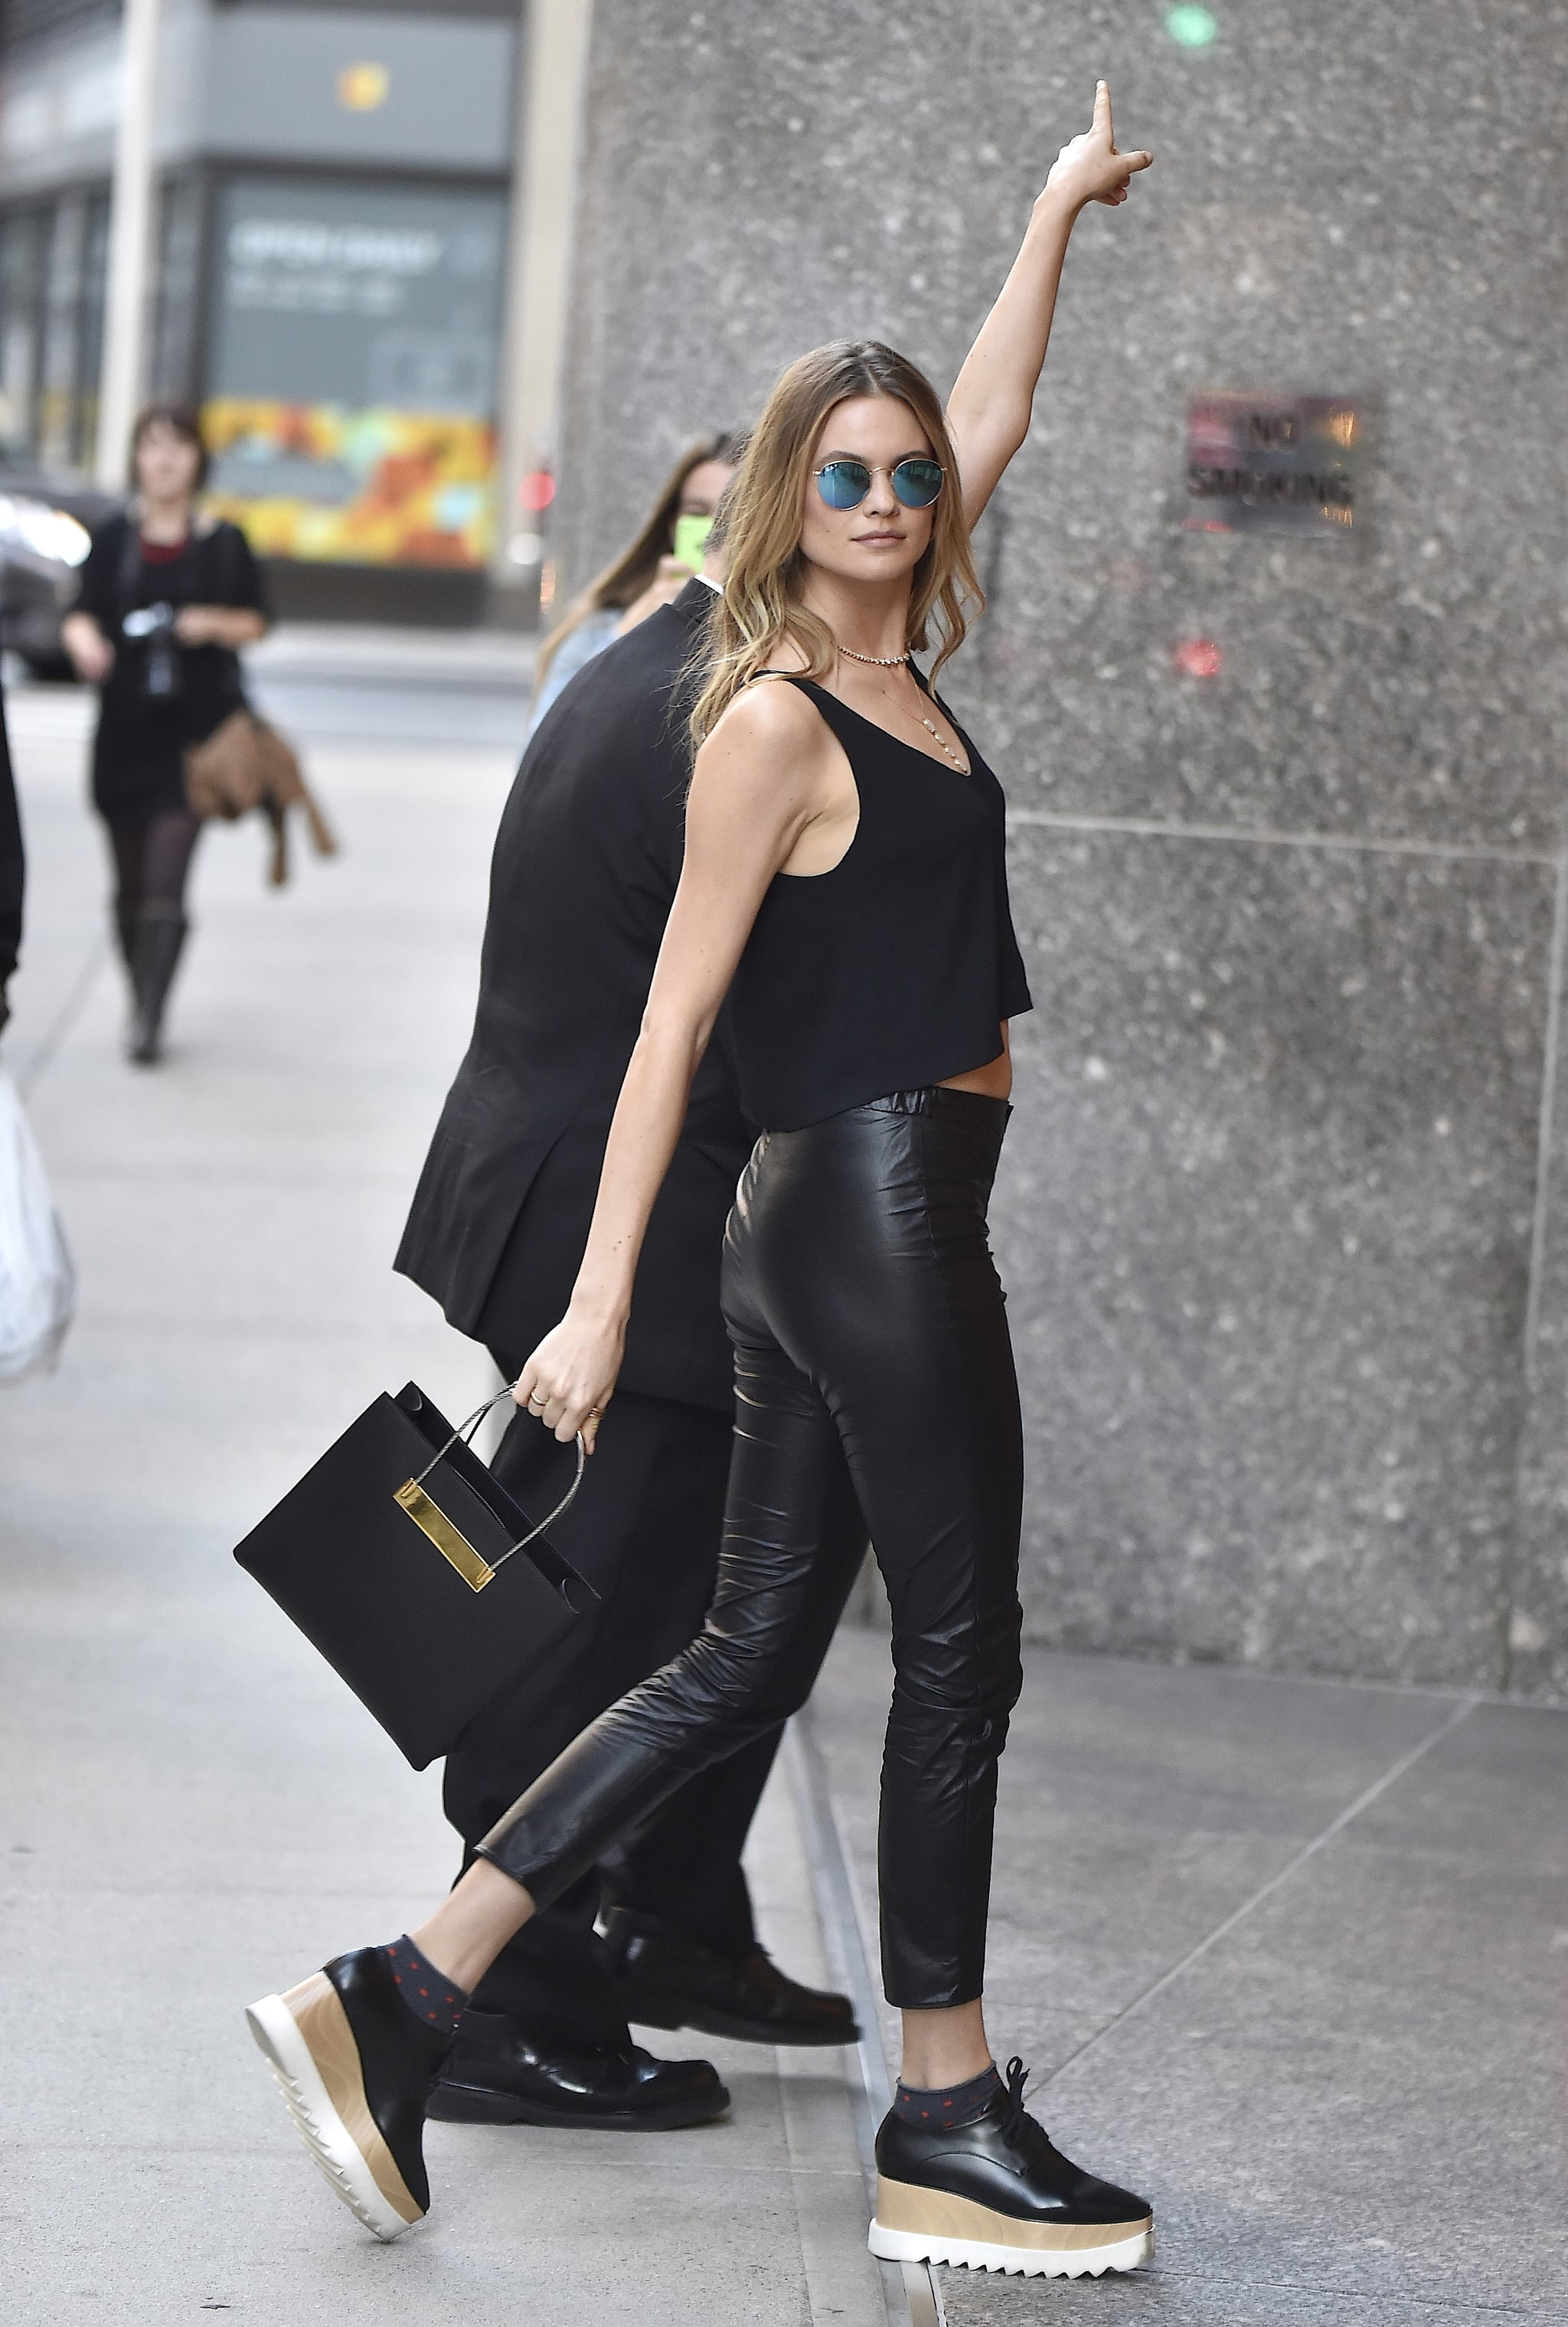 Behati Prinsloo Takes on Street Style for Super Nasty ...